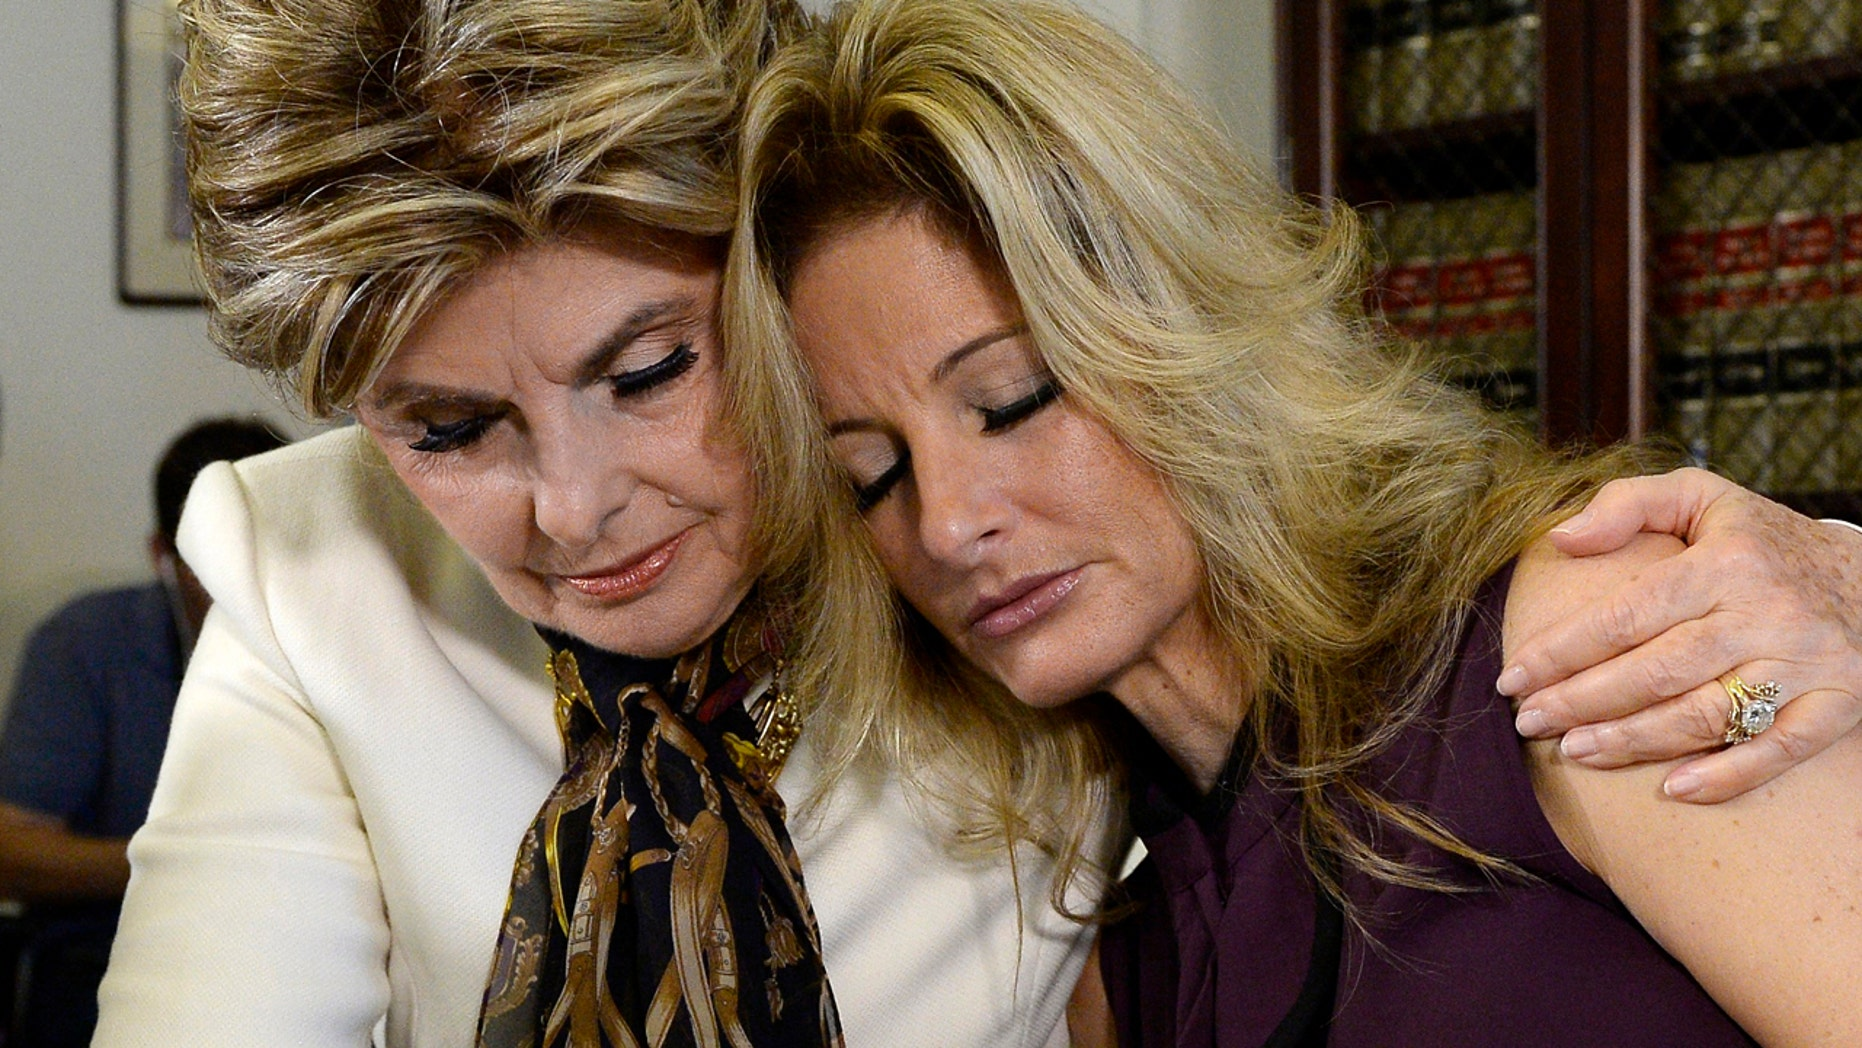 FILE: Summer Zervos, a former contestant on the TV show The Apprentice, is embraced by lawyer Gloria Allred